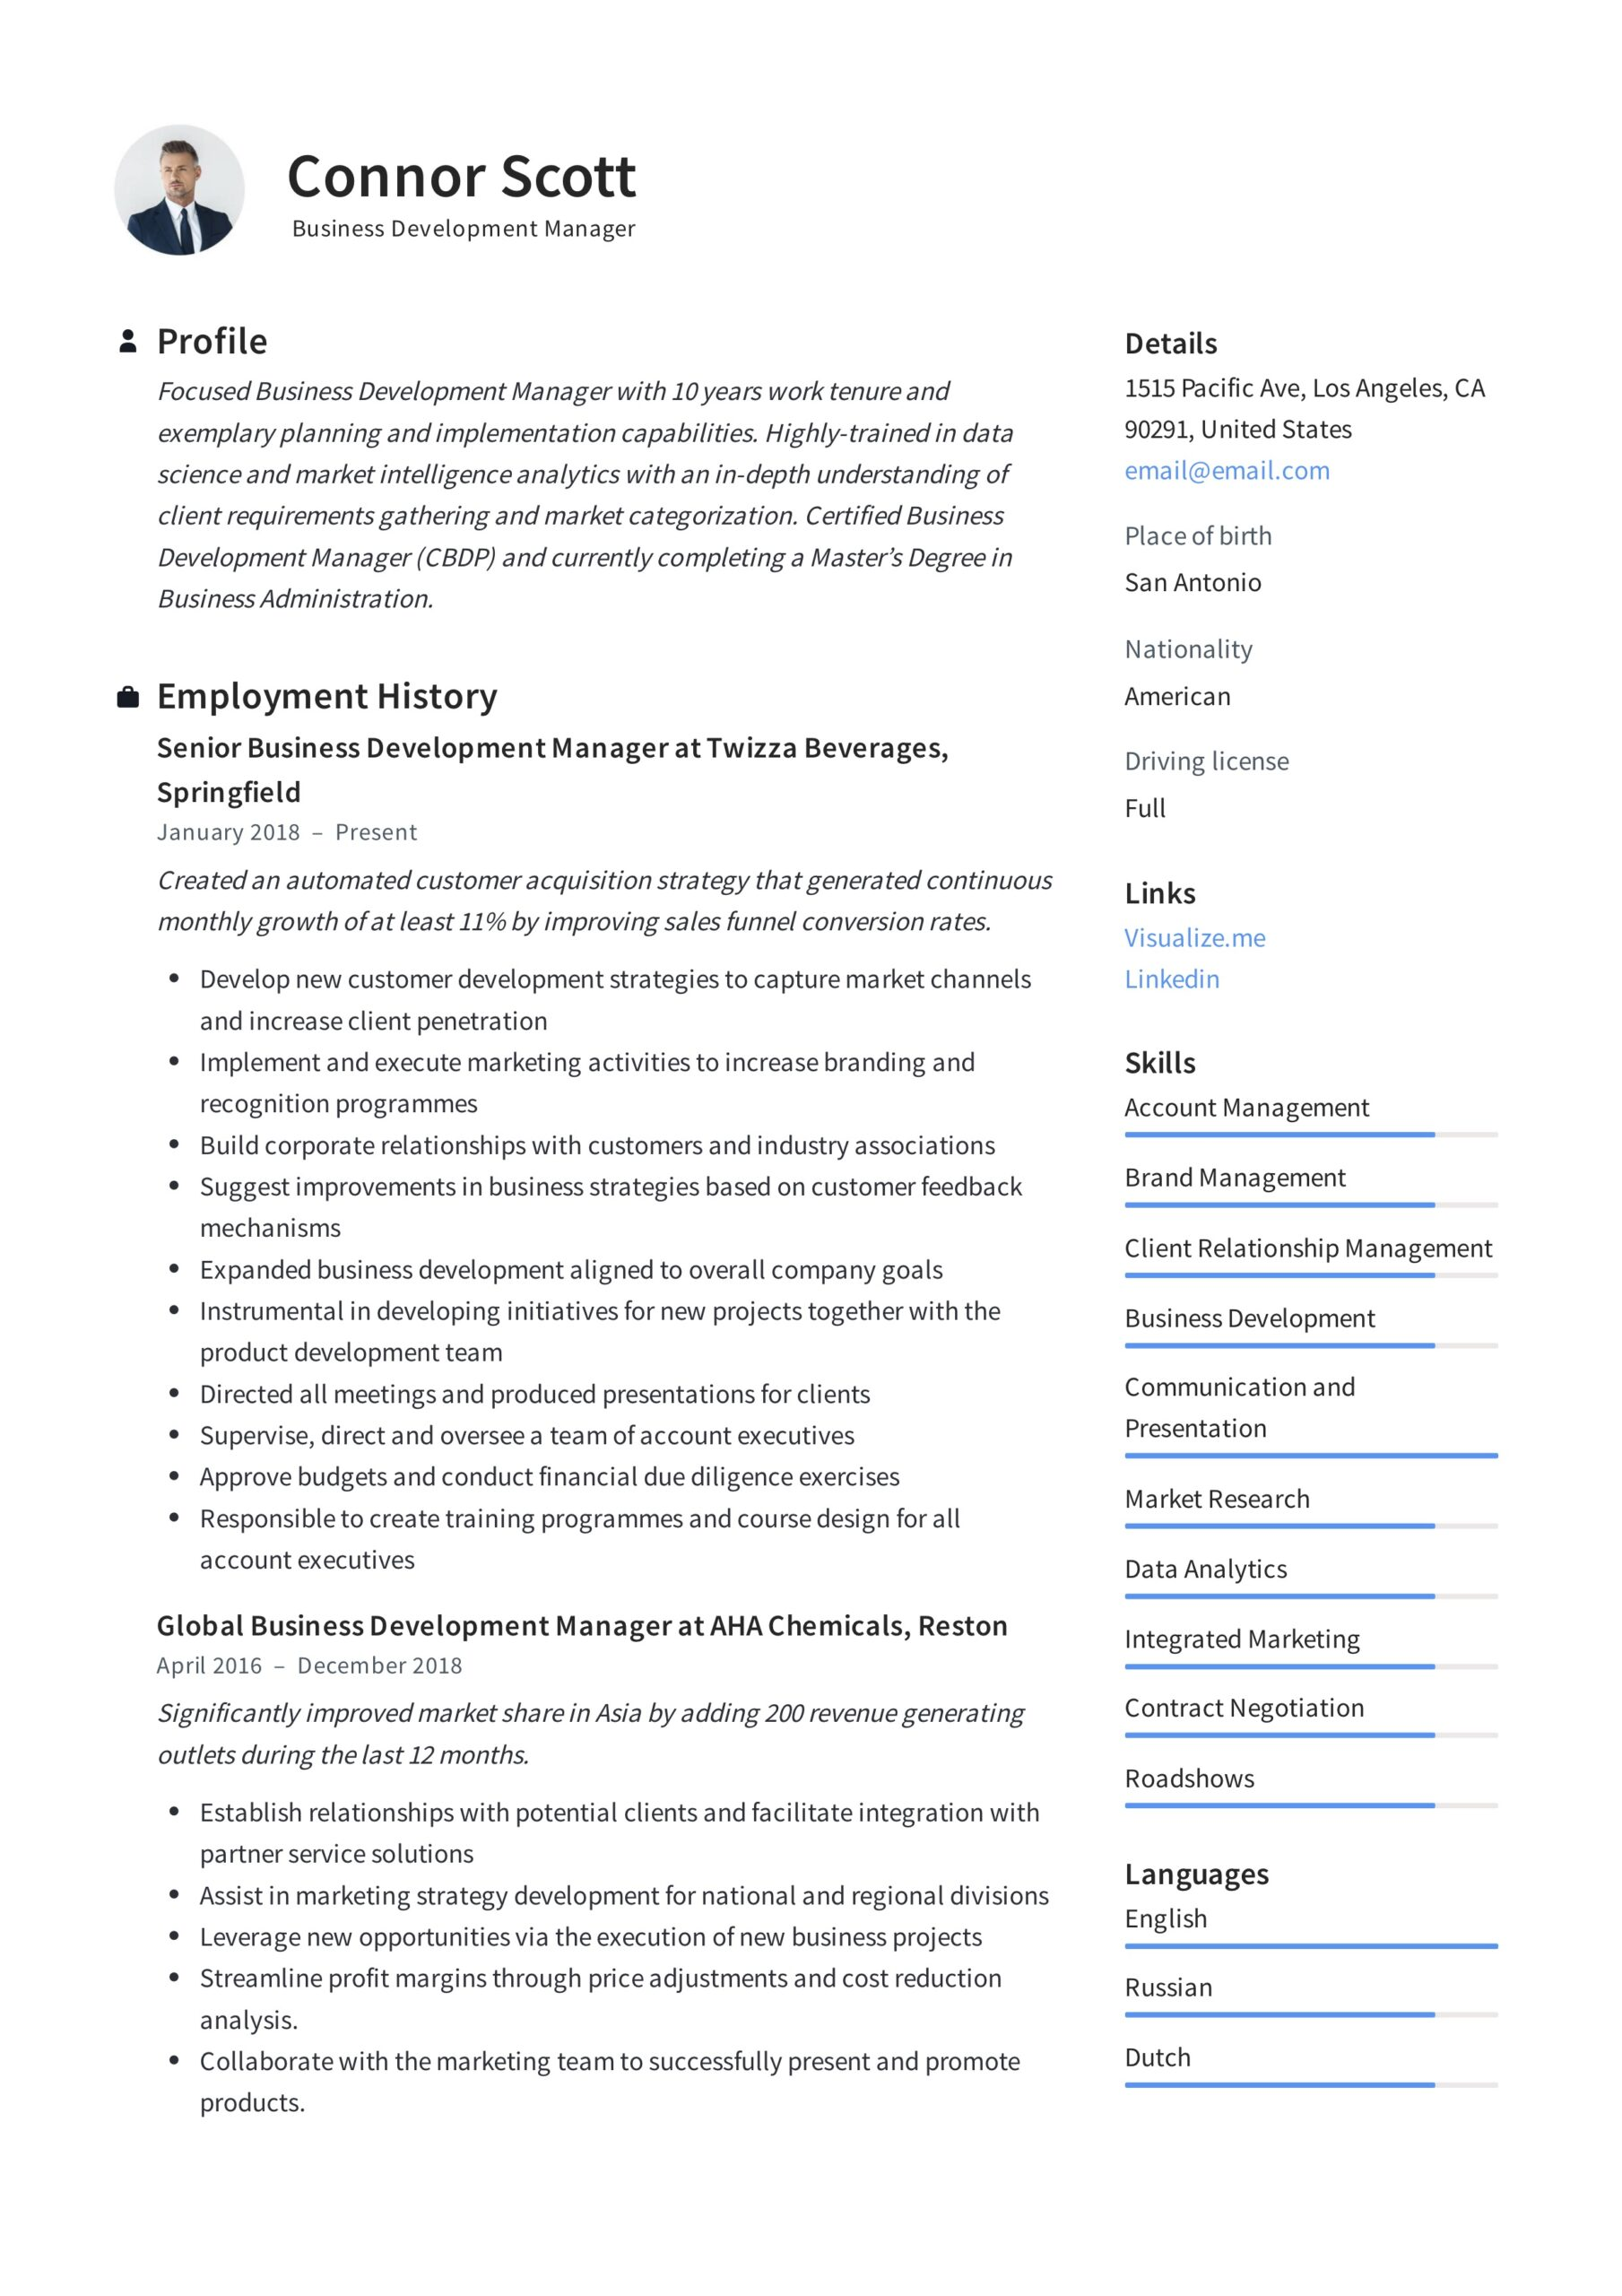 business development manager resume guide templates pdf director apple specialist sample Resume Business Director Resume